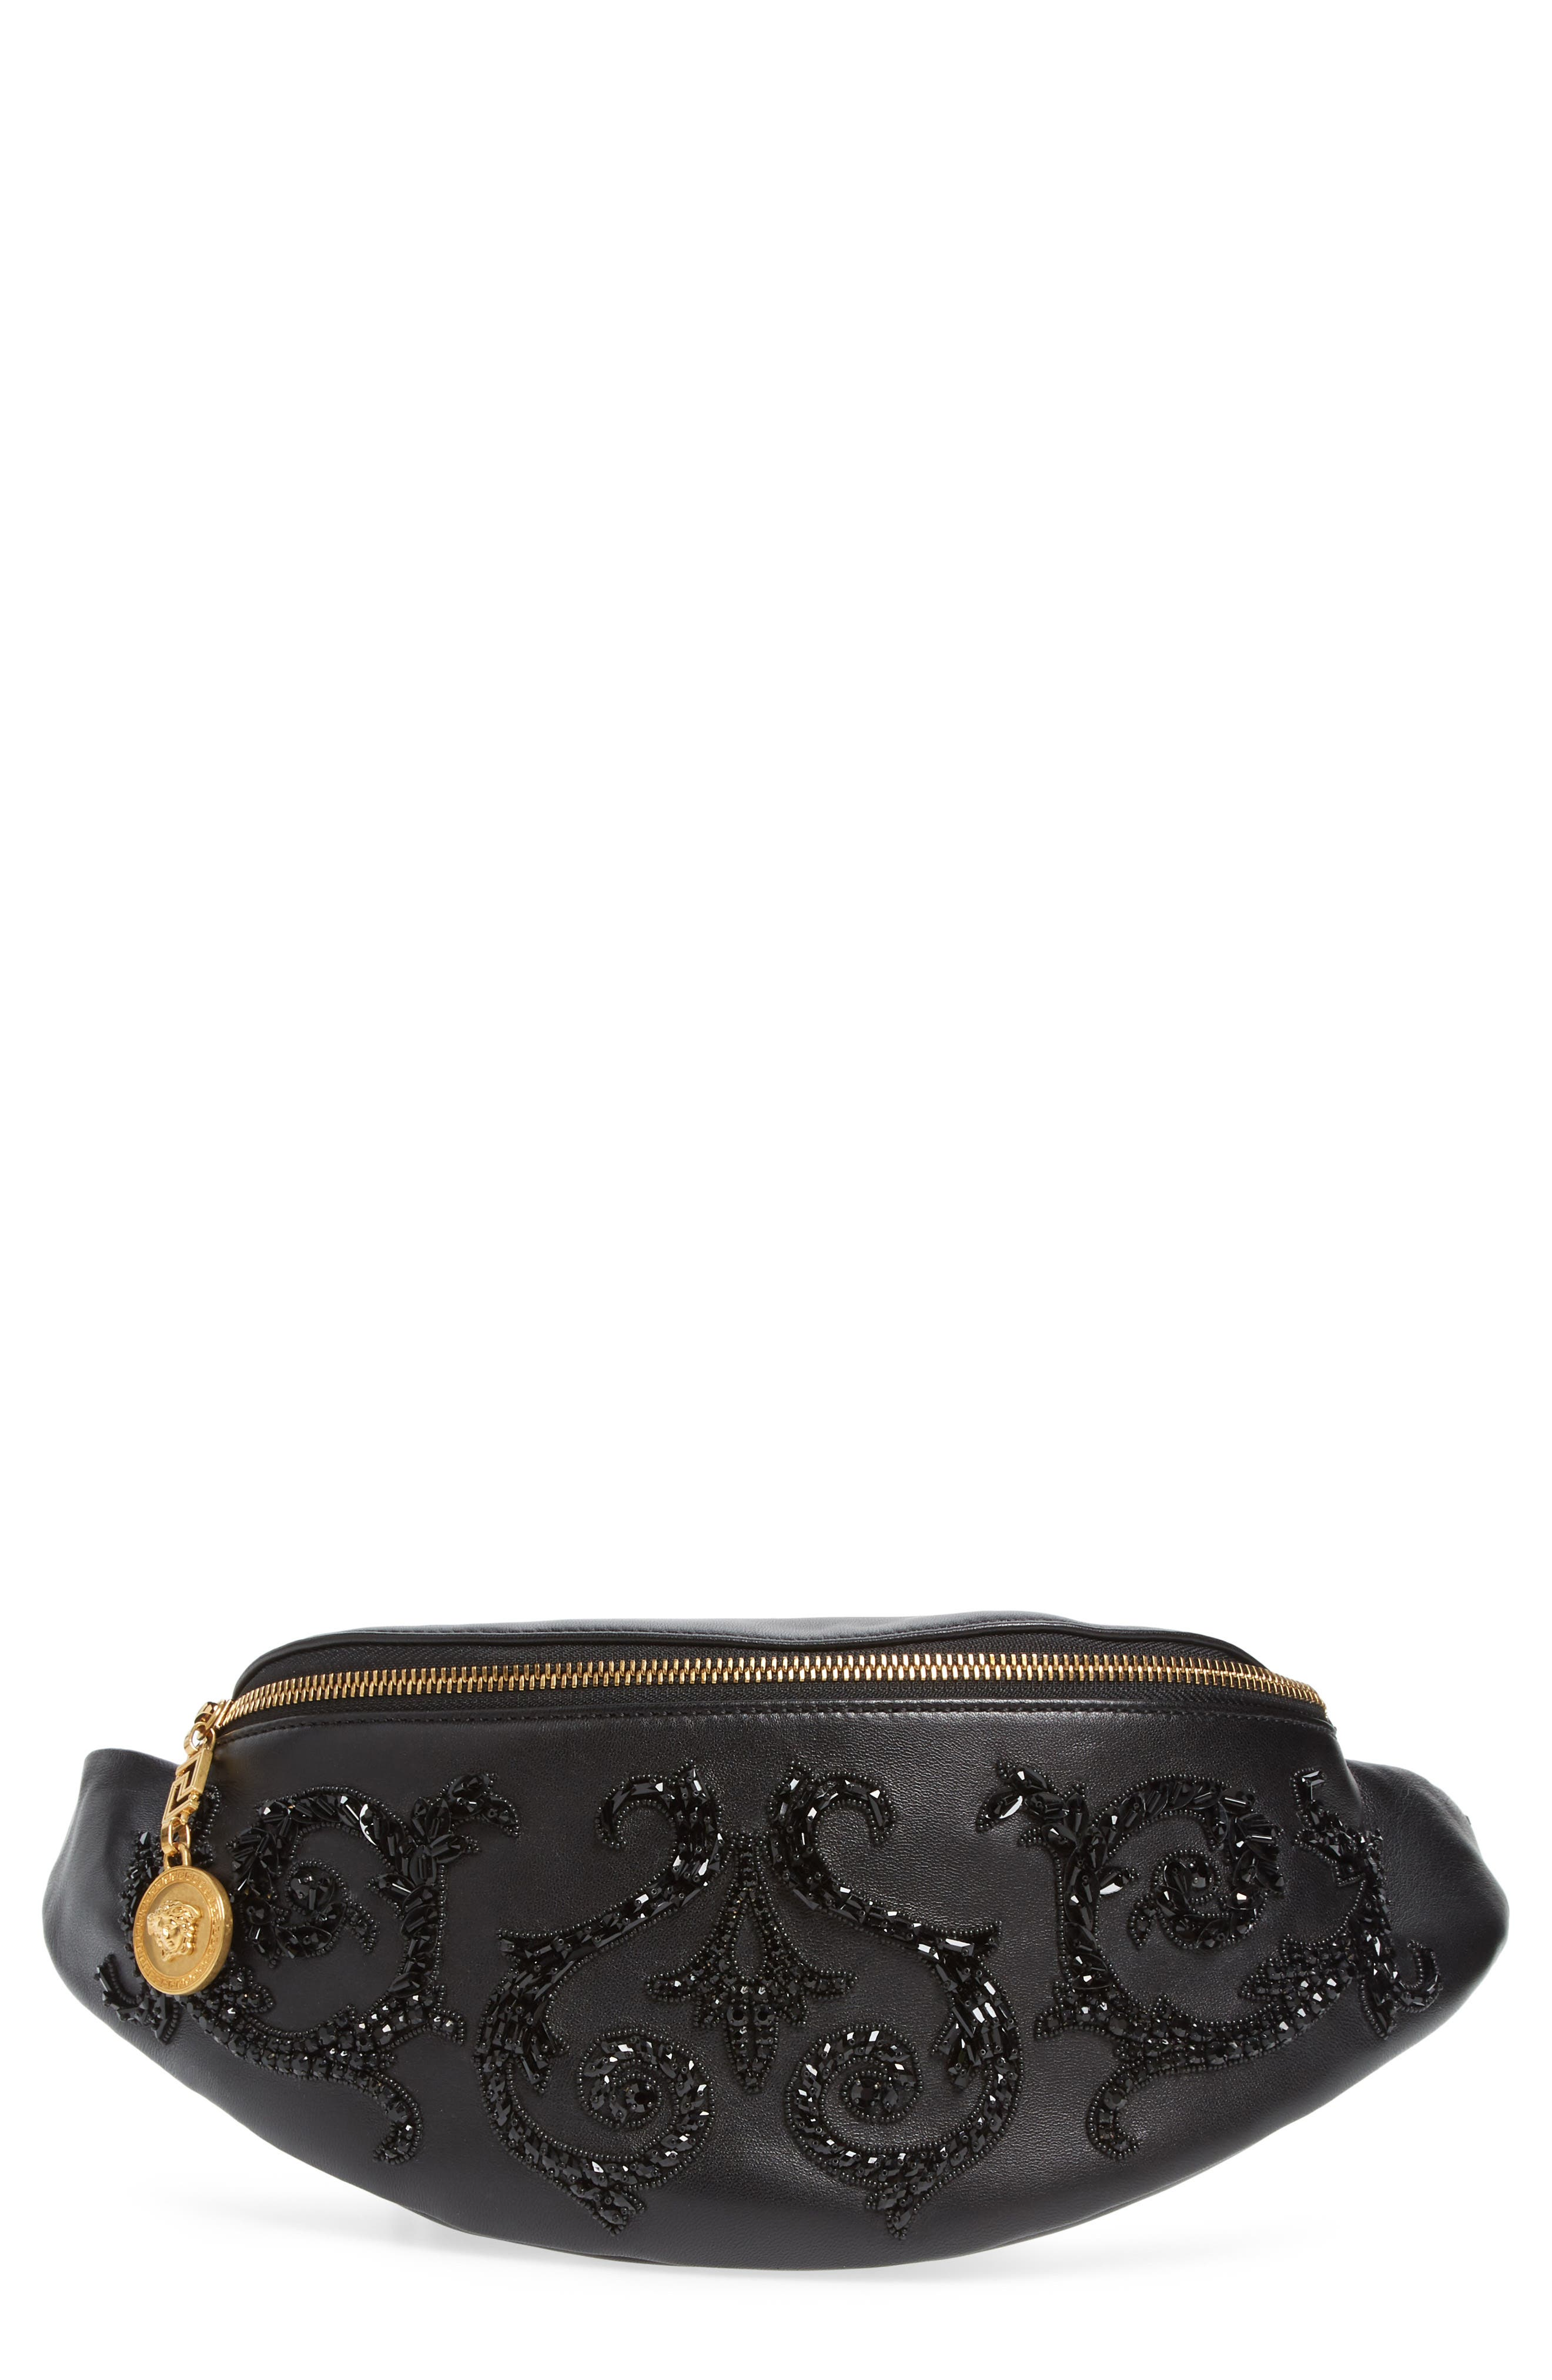 VERSACE COLLECTION,                             Versace Crystal Embellished Leather Belt Bag,                             Main thumbnail 1, color,                             NERO